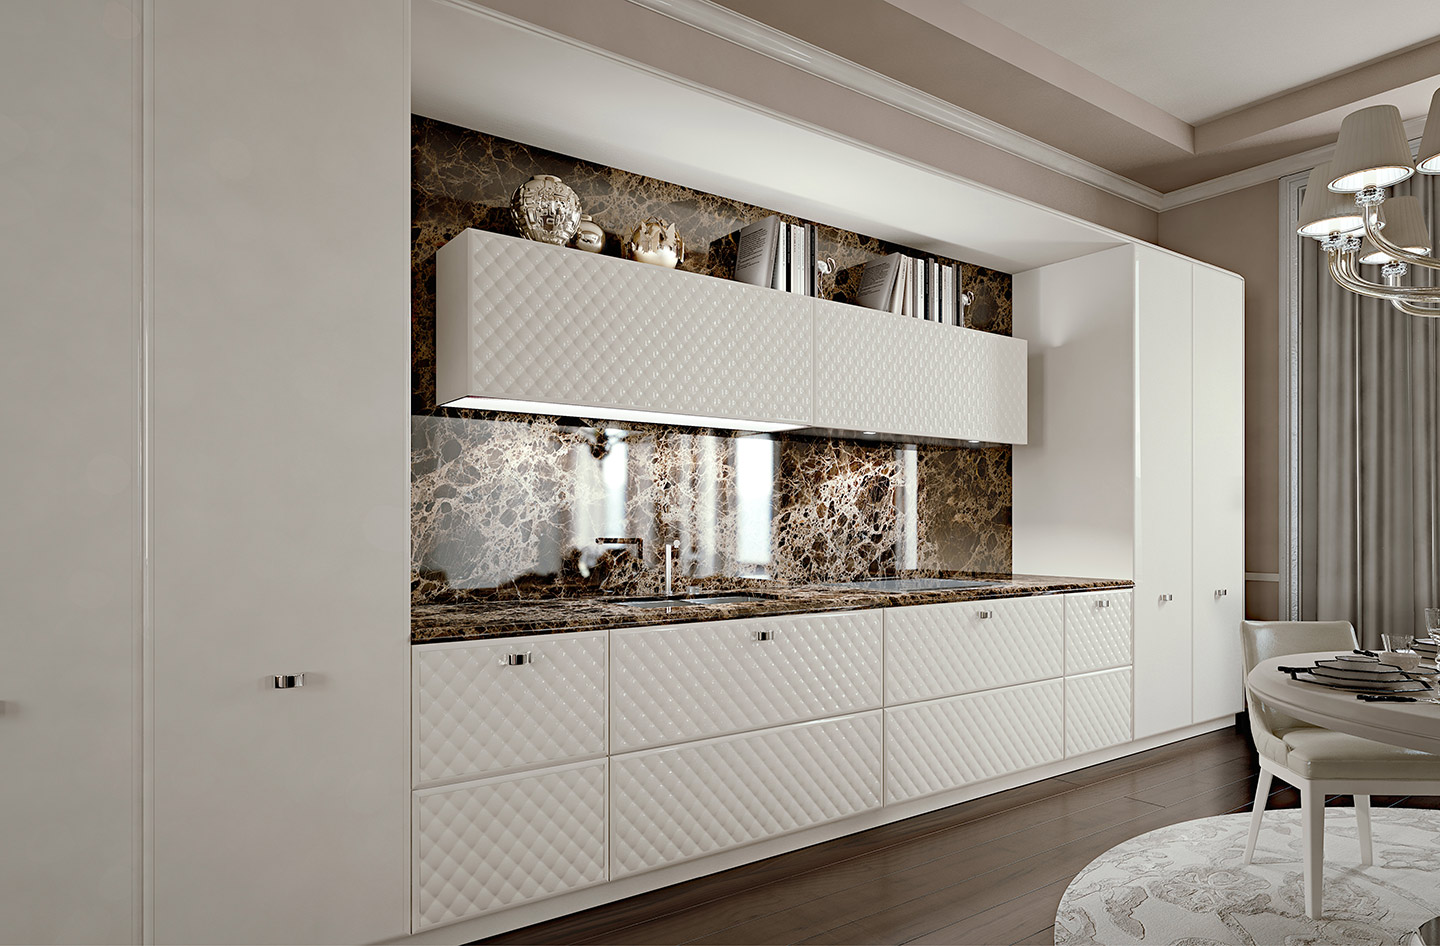 Bellagio scic for Cucine design lusso